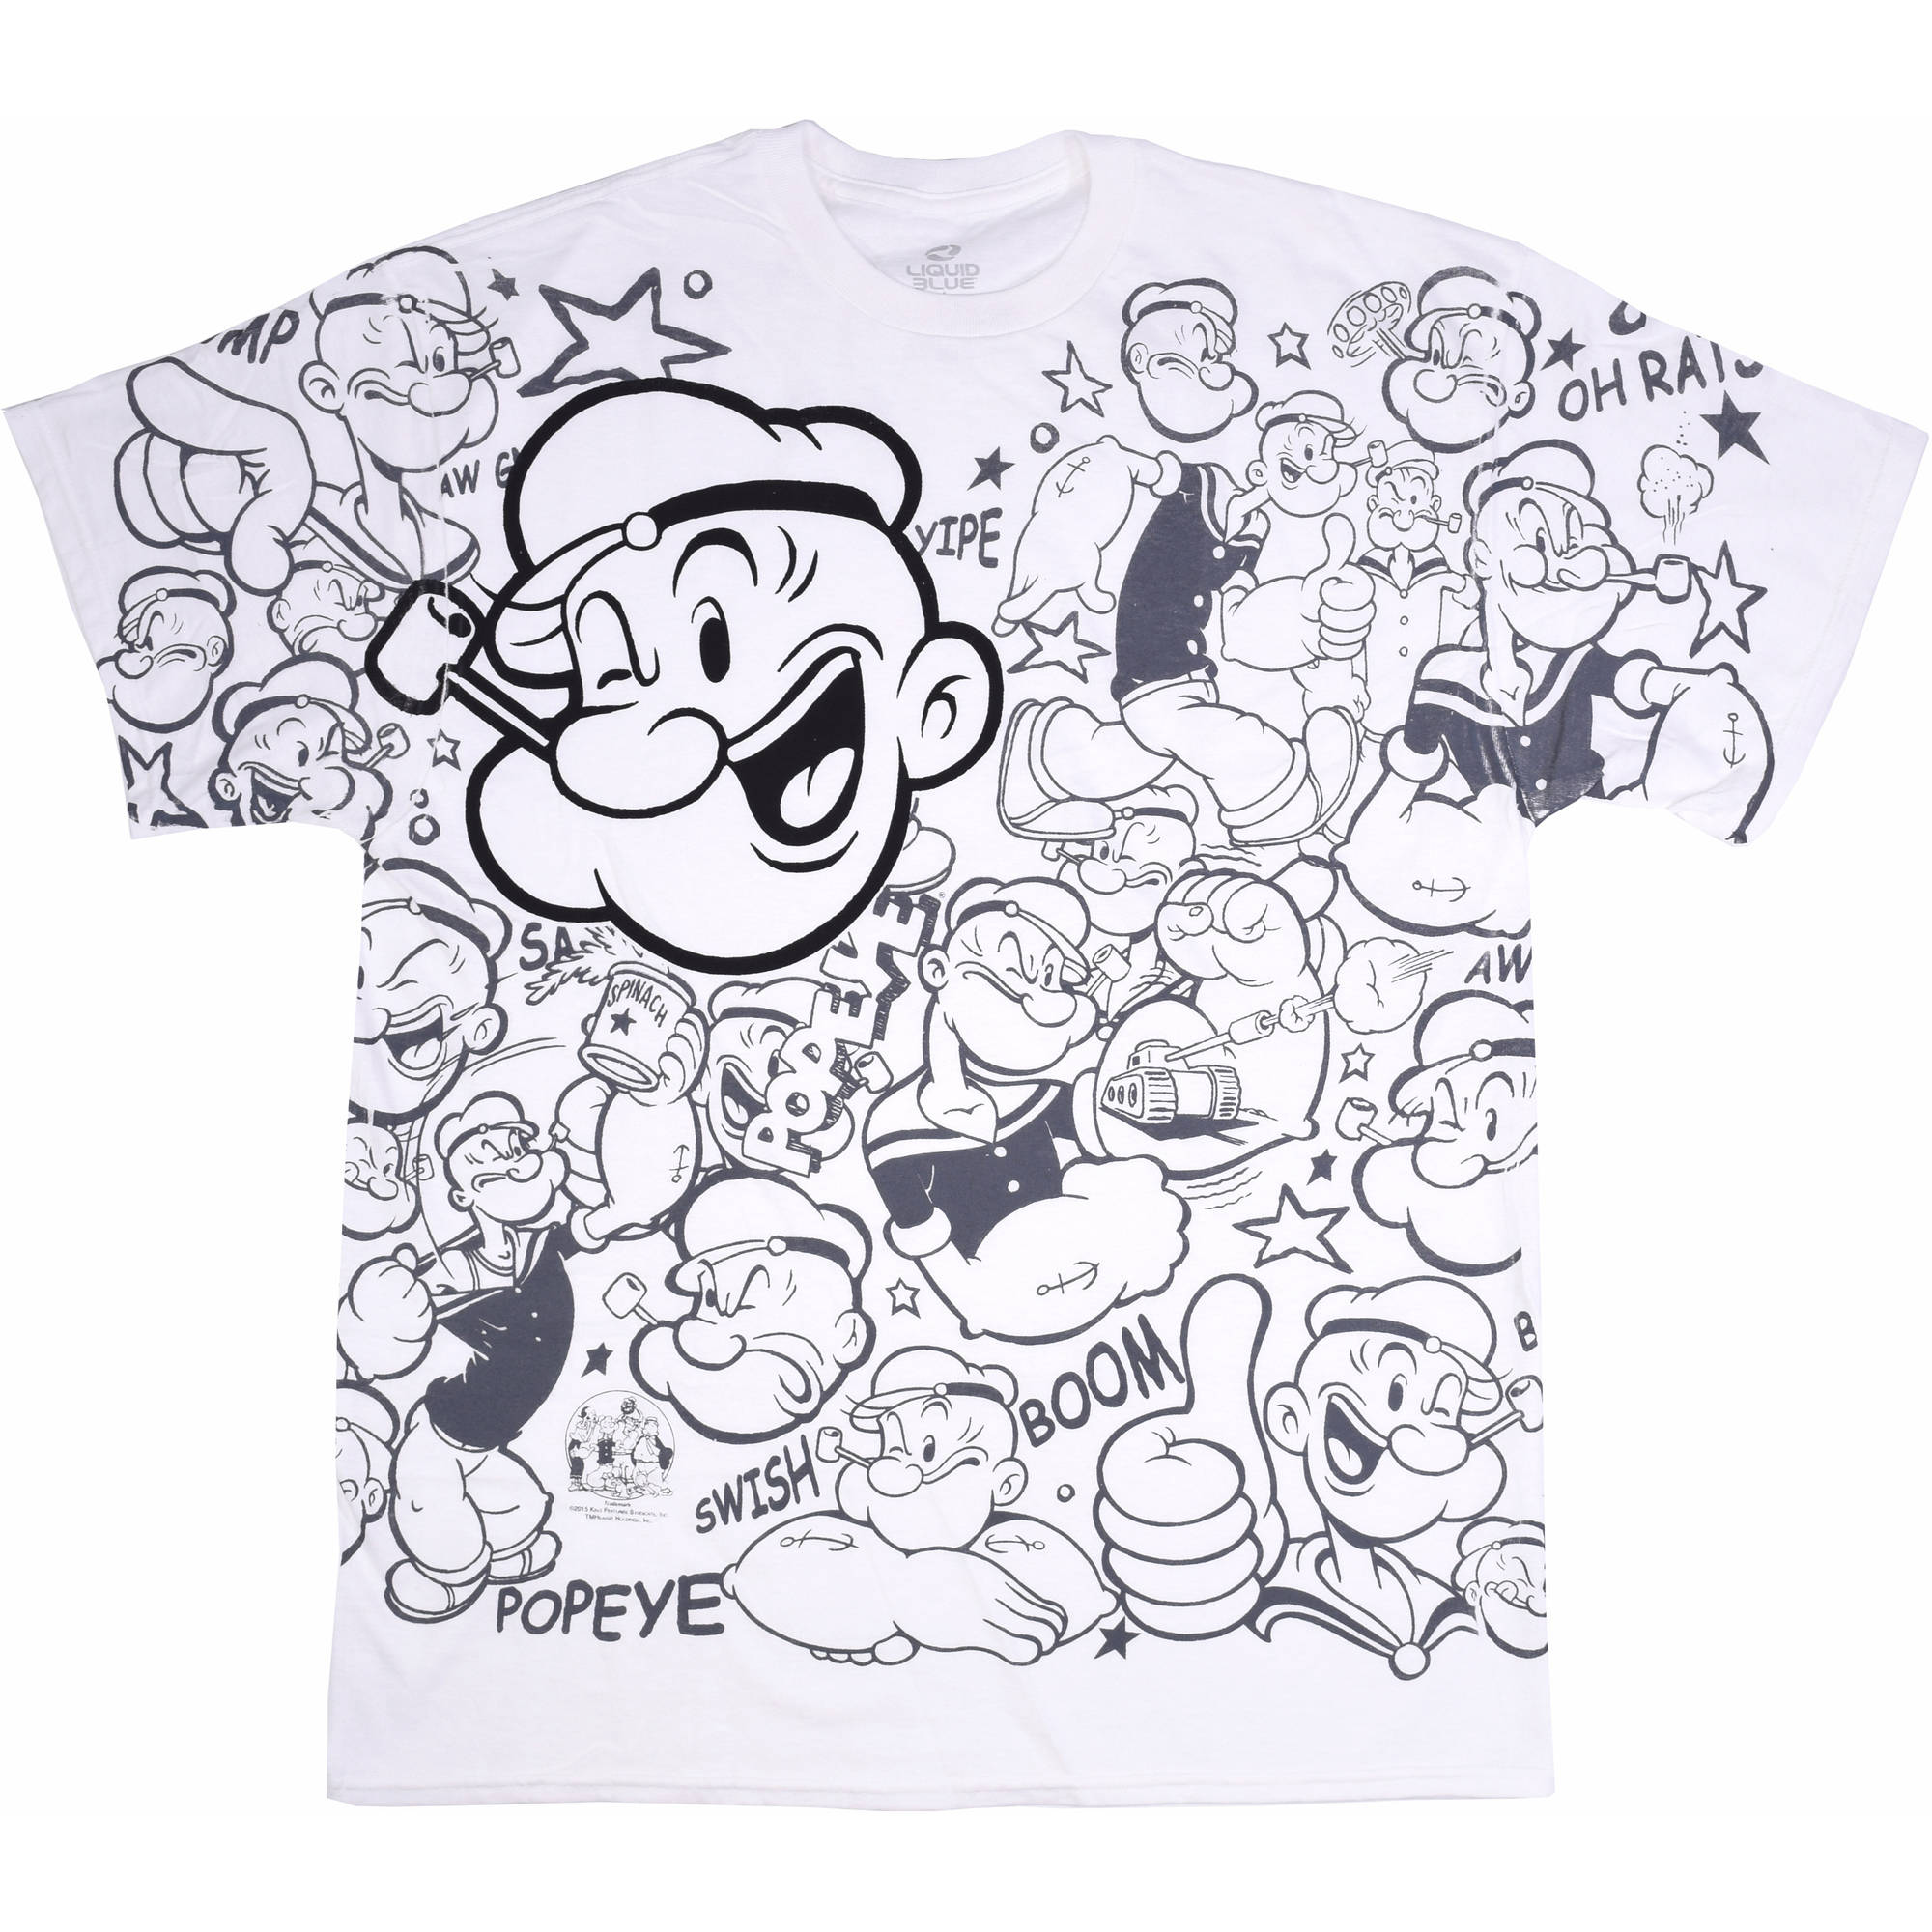 Popeye All Over Print Men's Graphic Tee